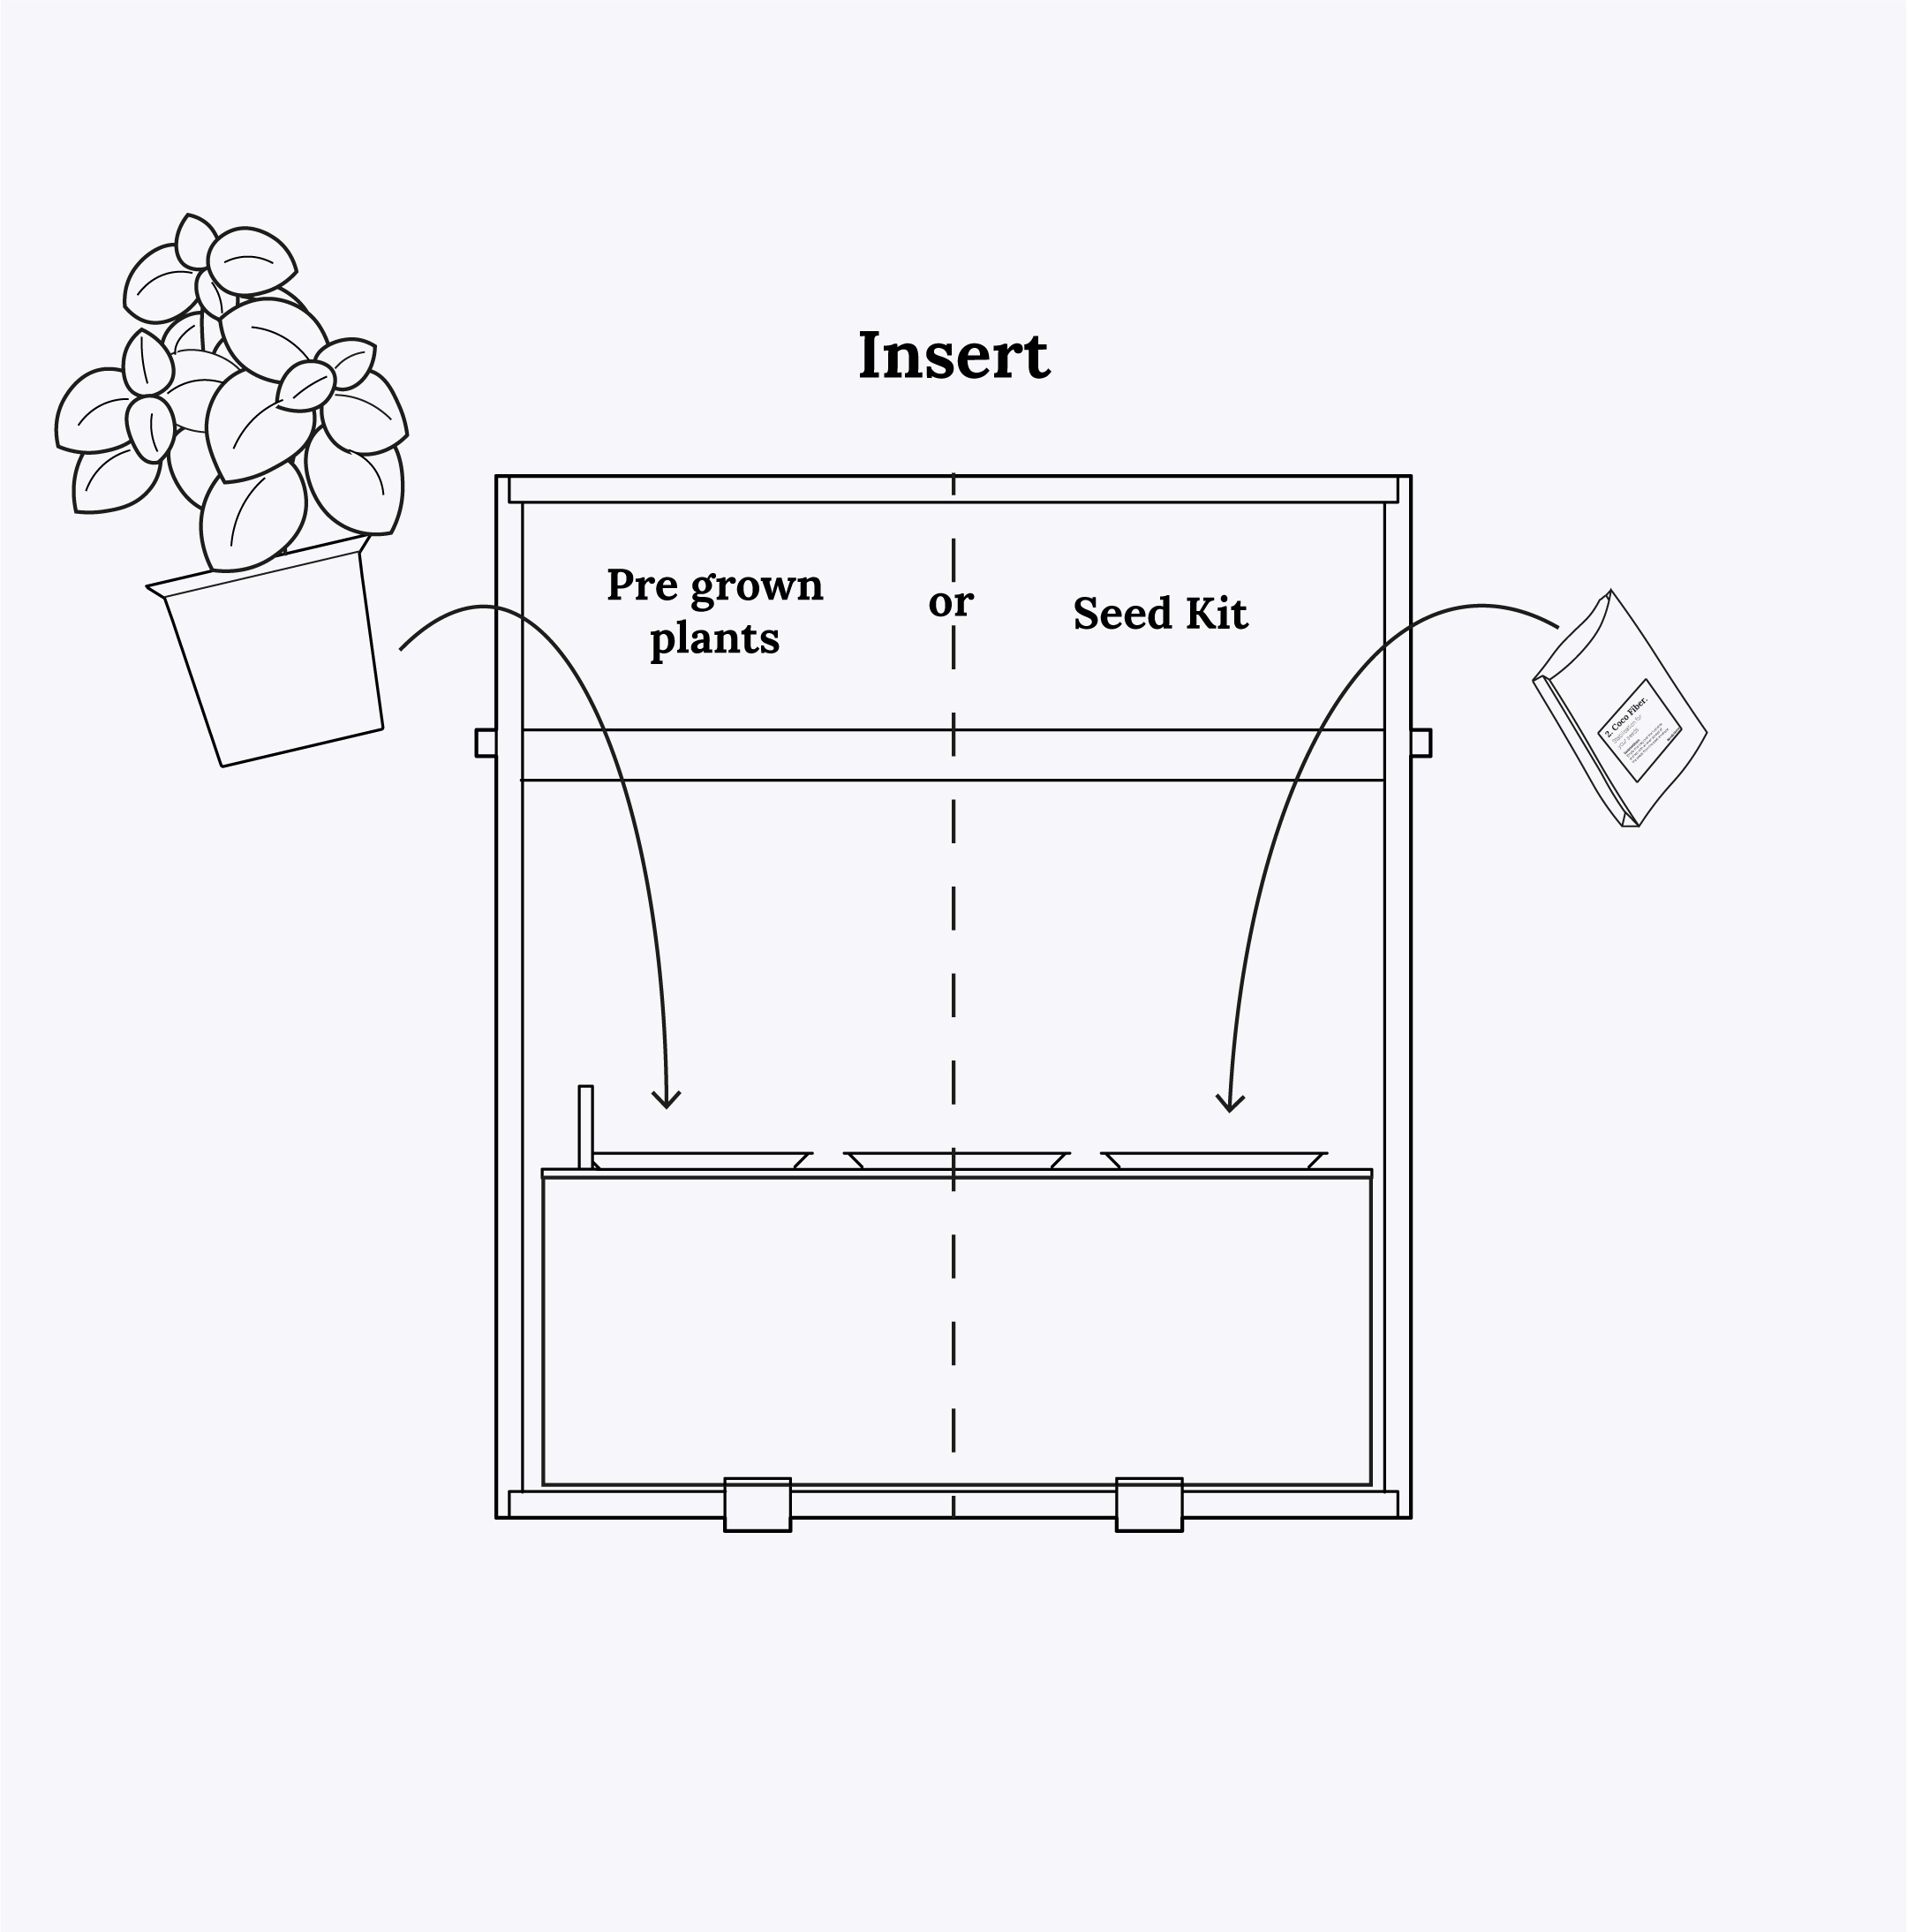 how to insert plants